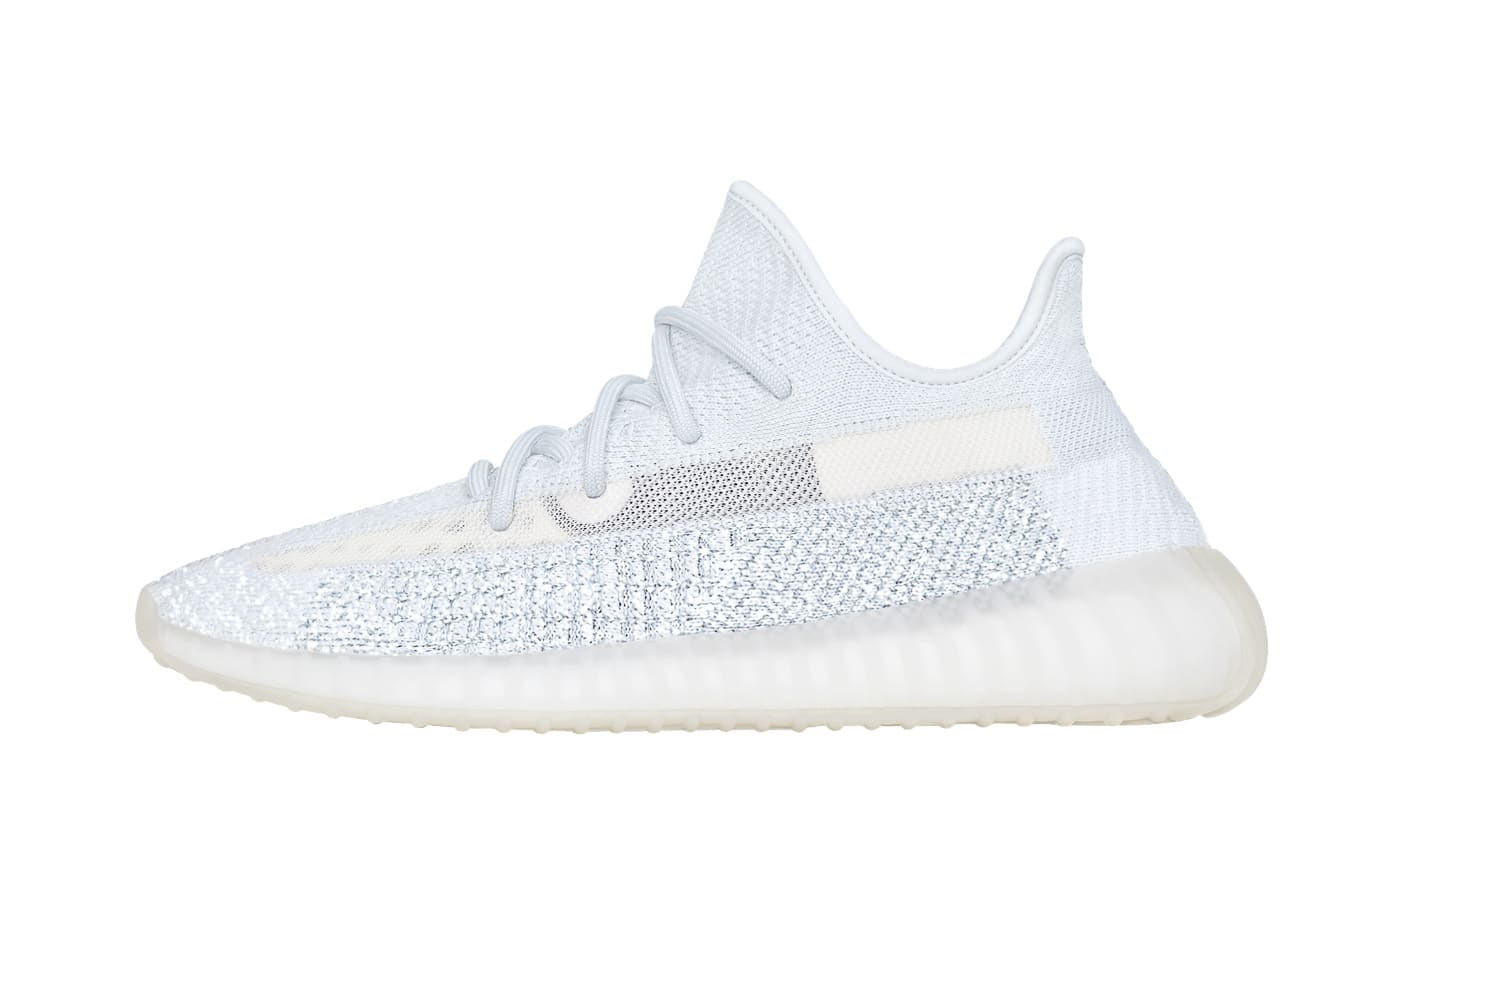 END. Features | adidas + KANYE WEST YEEZY BOOST 350 V2